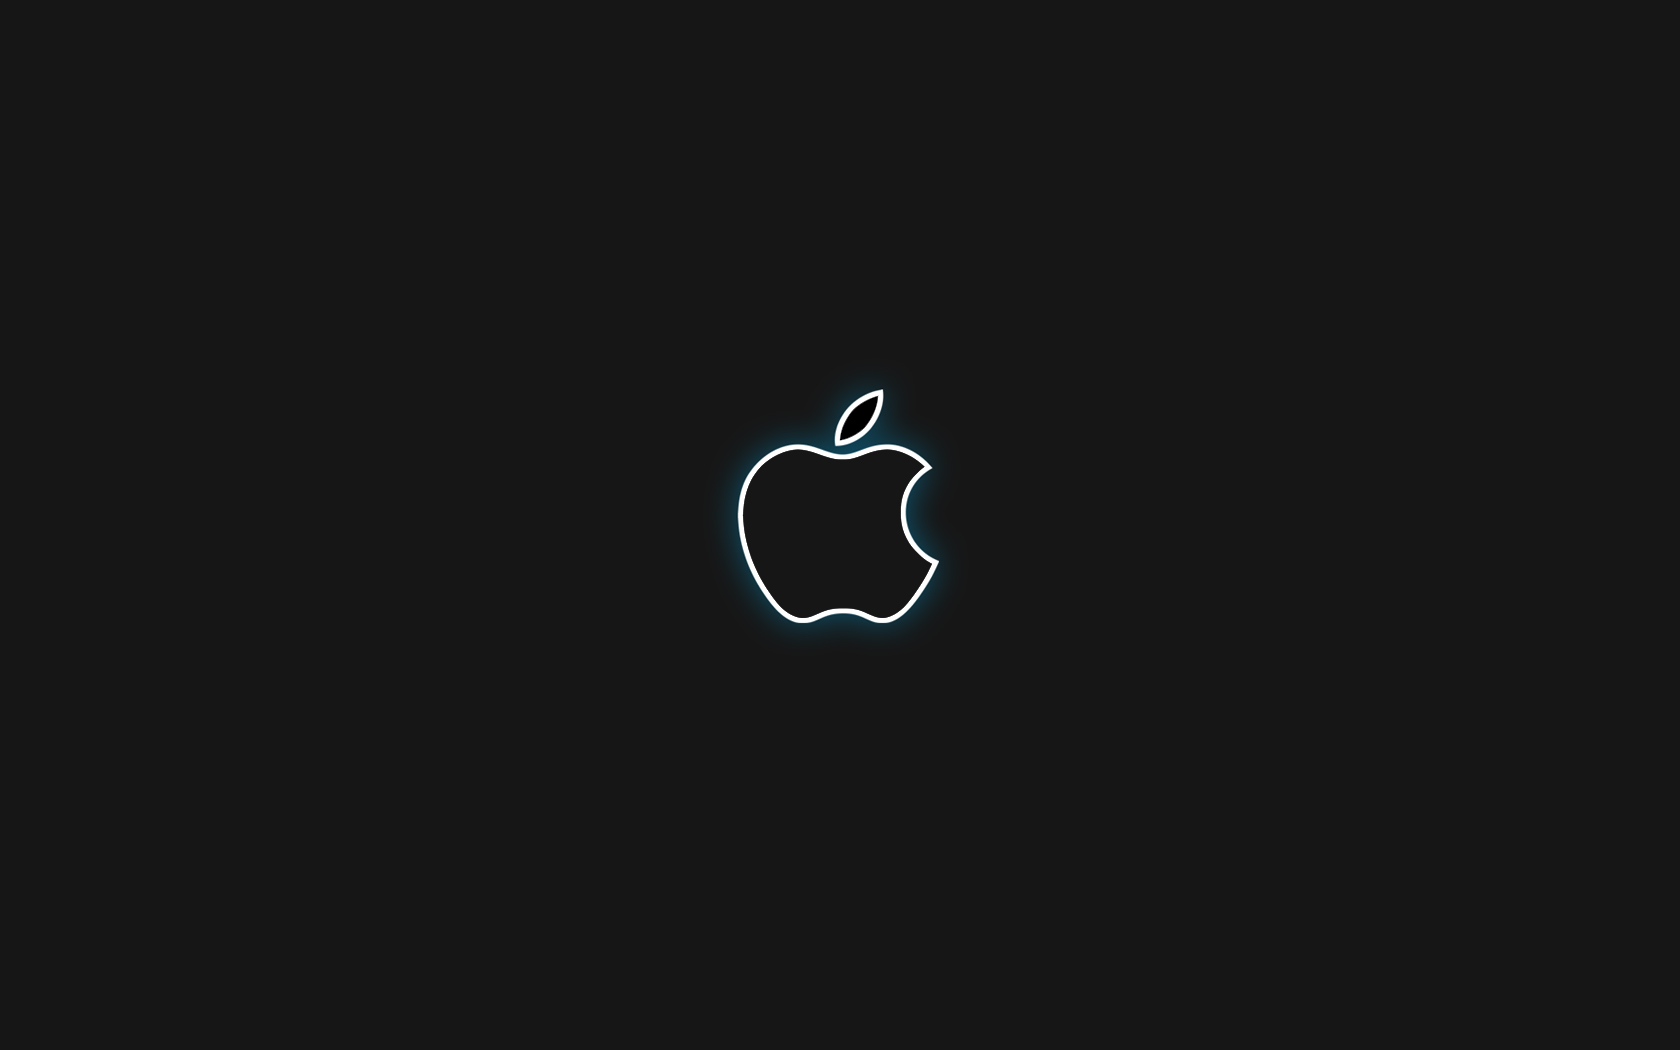 Apple Logo HD Wallpapers  Wallpaper  1680x1050